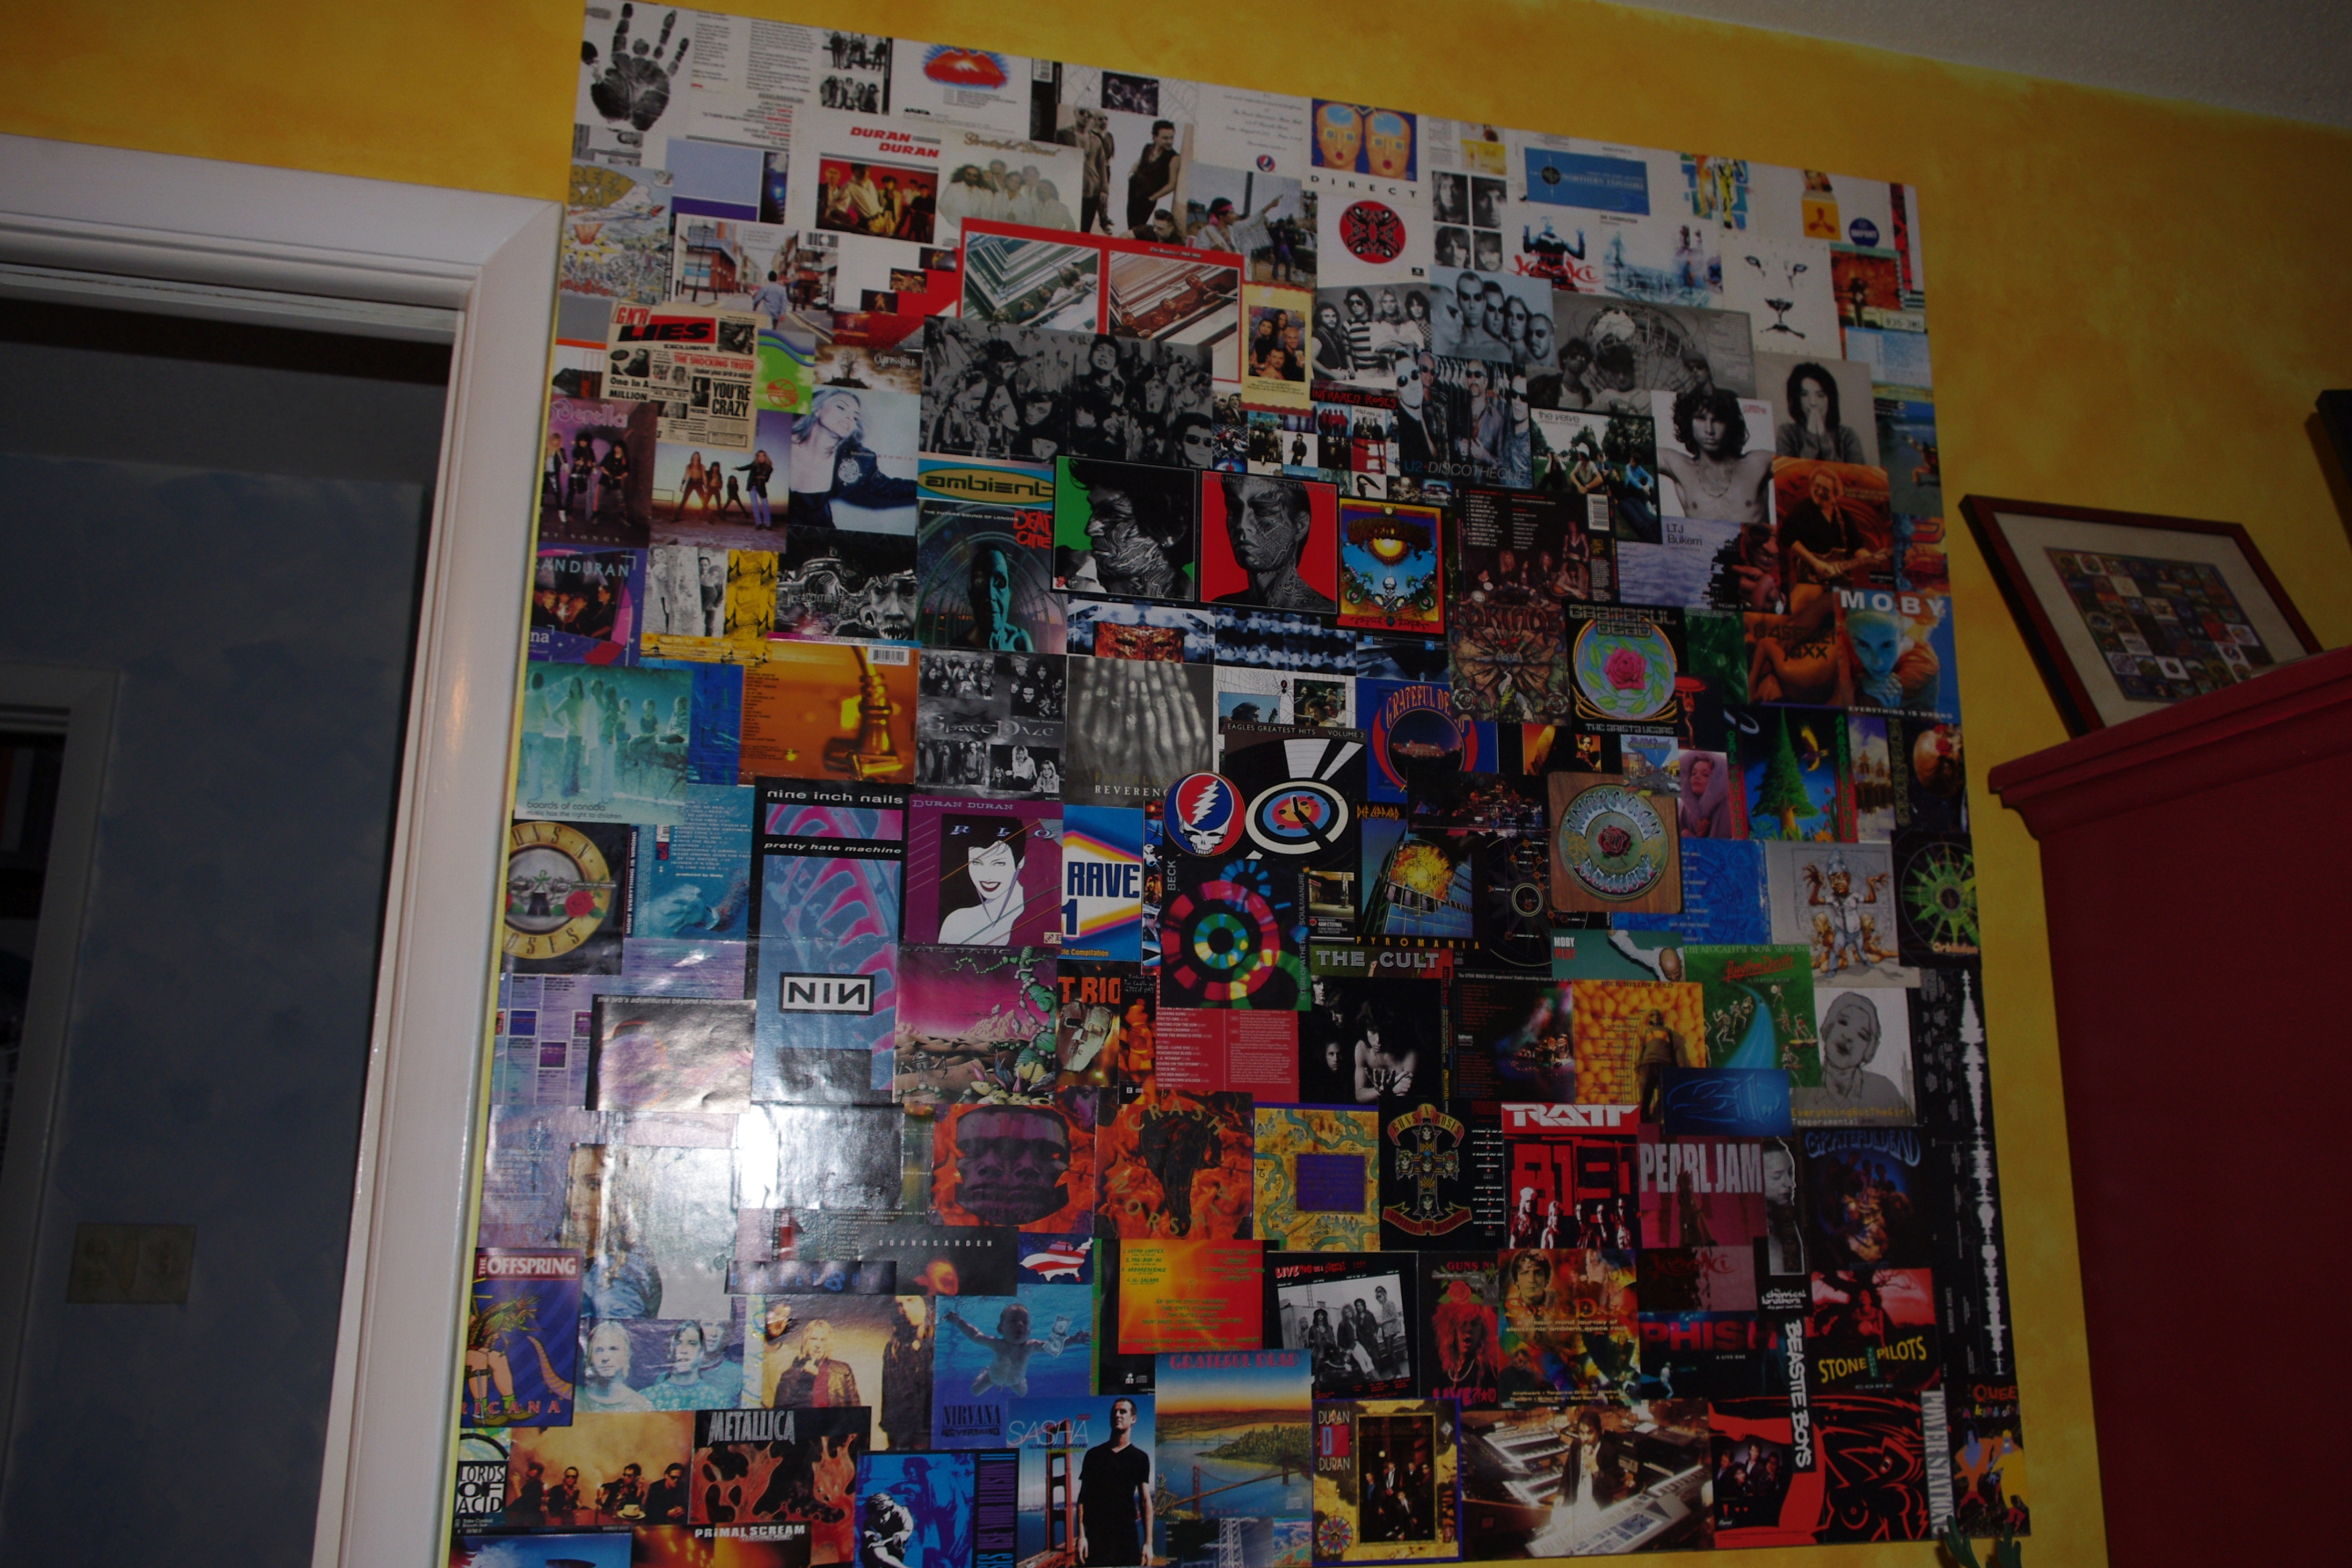 Repurpose Cd Album Cover Art In Giant Wall Collage Instructables